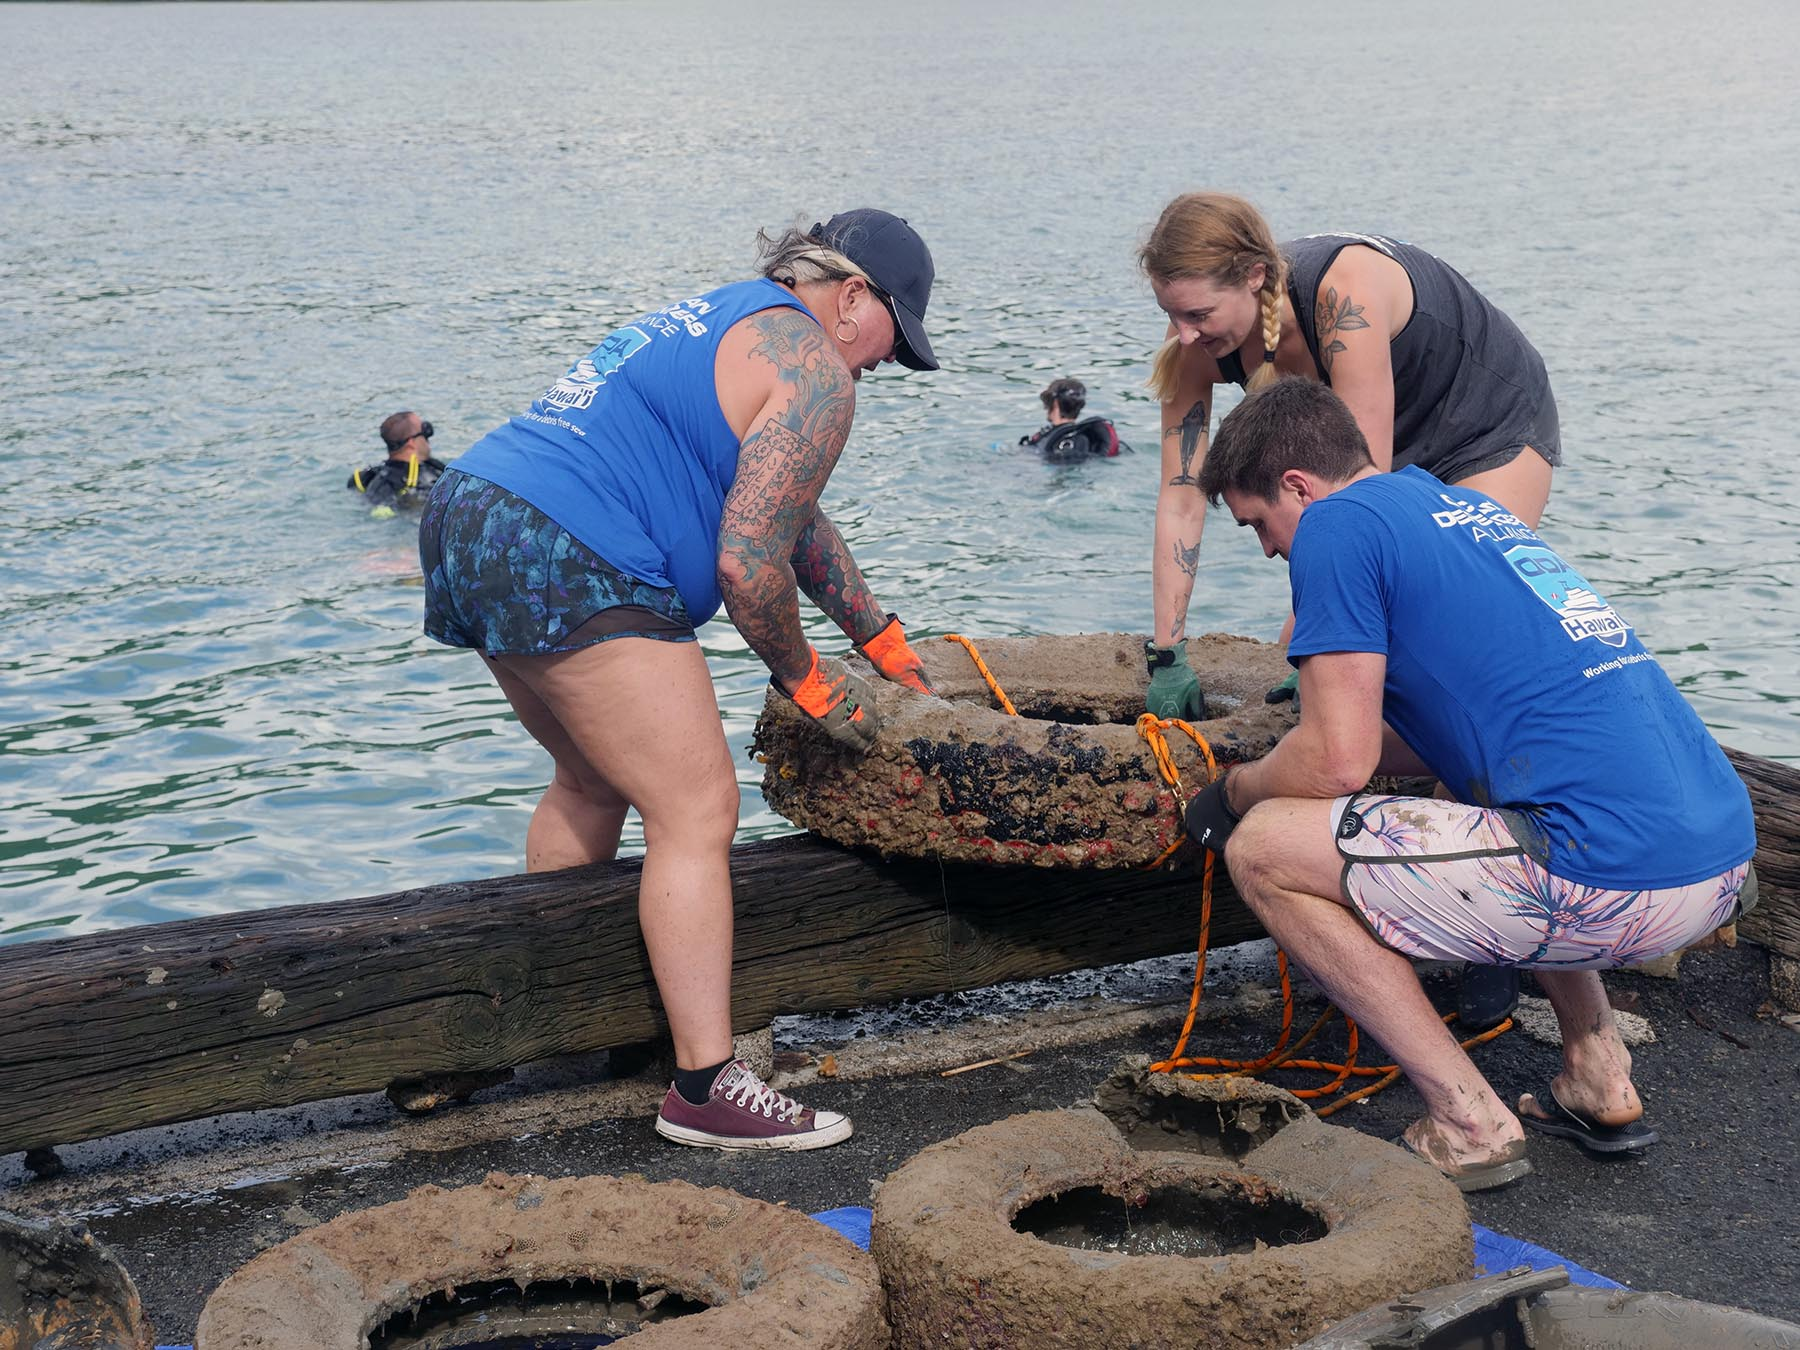 <p>Kaneohe Bay Harbormaster Tanya Borabora works with Ocean Defense Alliance volunteers Sophie Morgan and Garrett Cook to haul tires retrieved by divers on to the dock.</p>